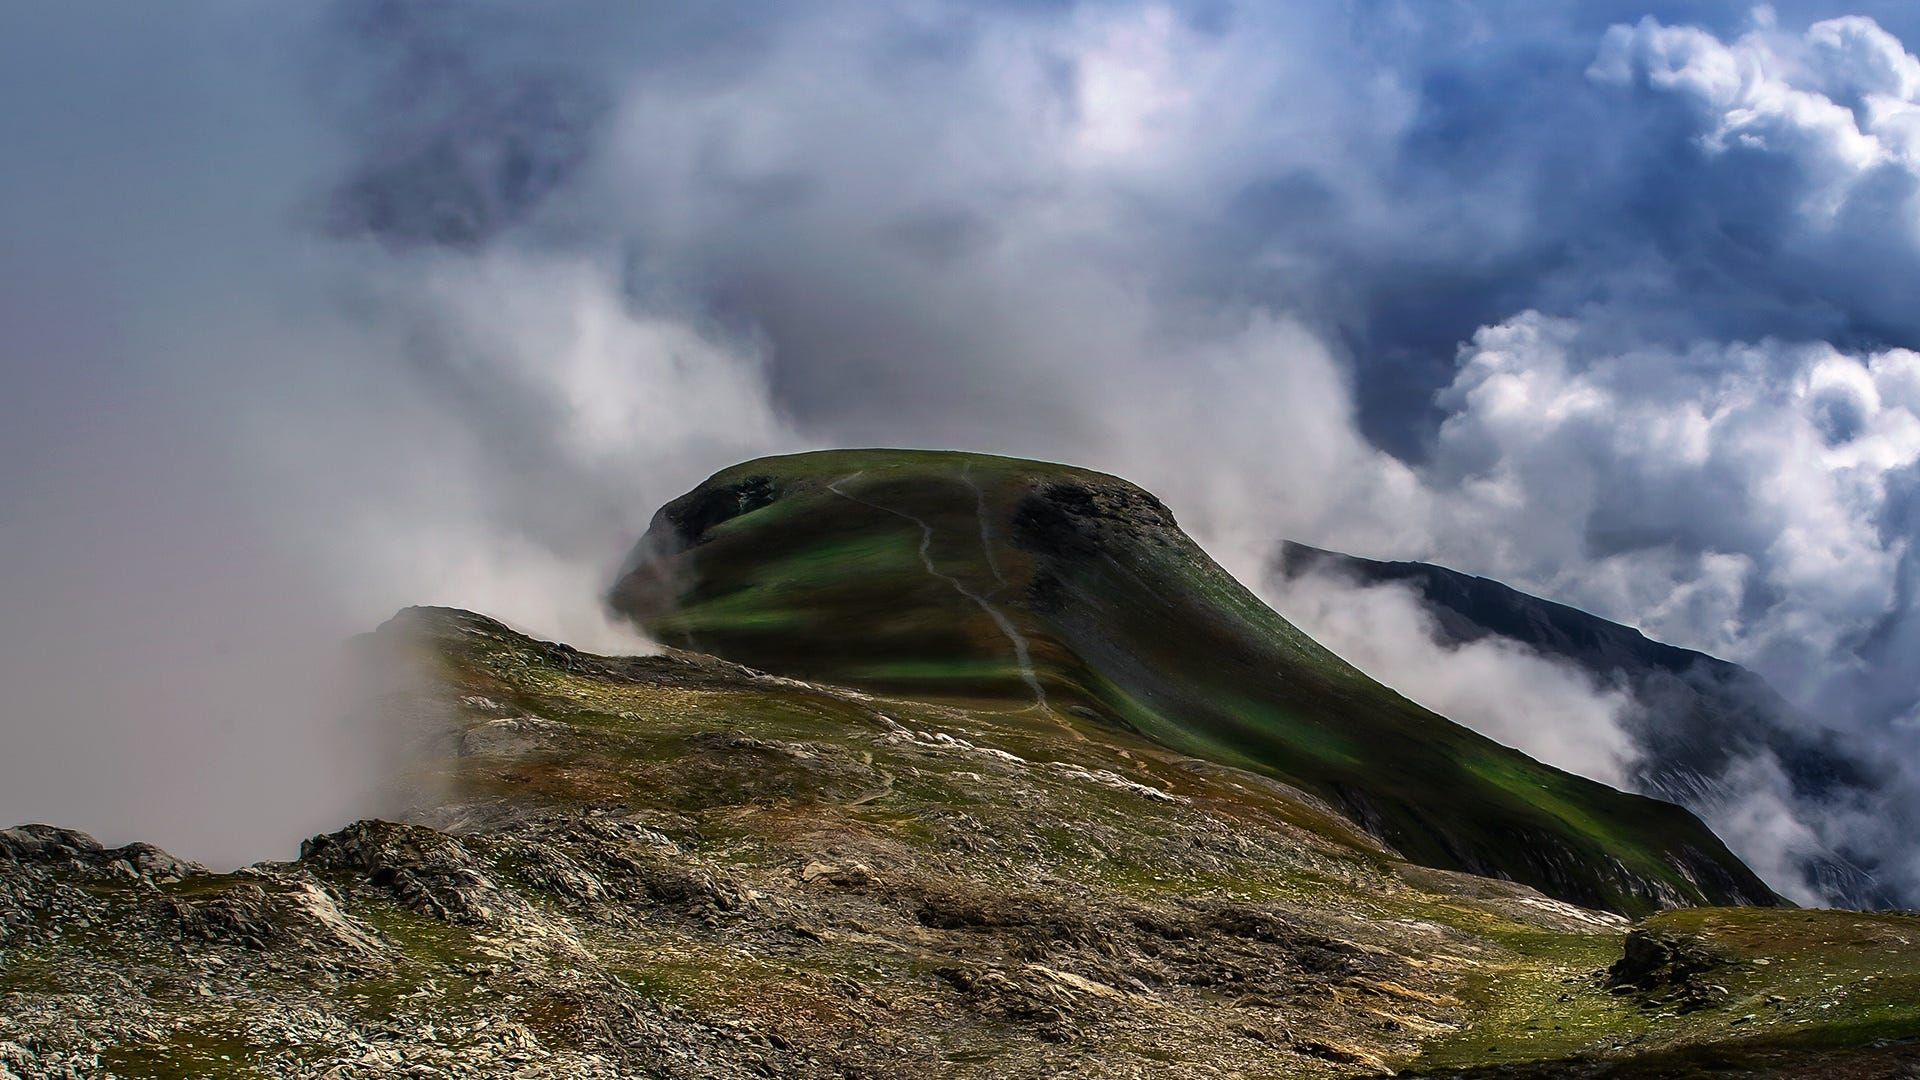 out of the clouds by Antoine Nobile on 500px